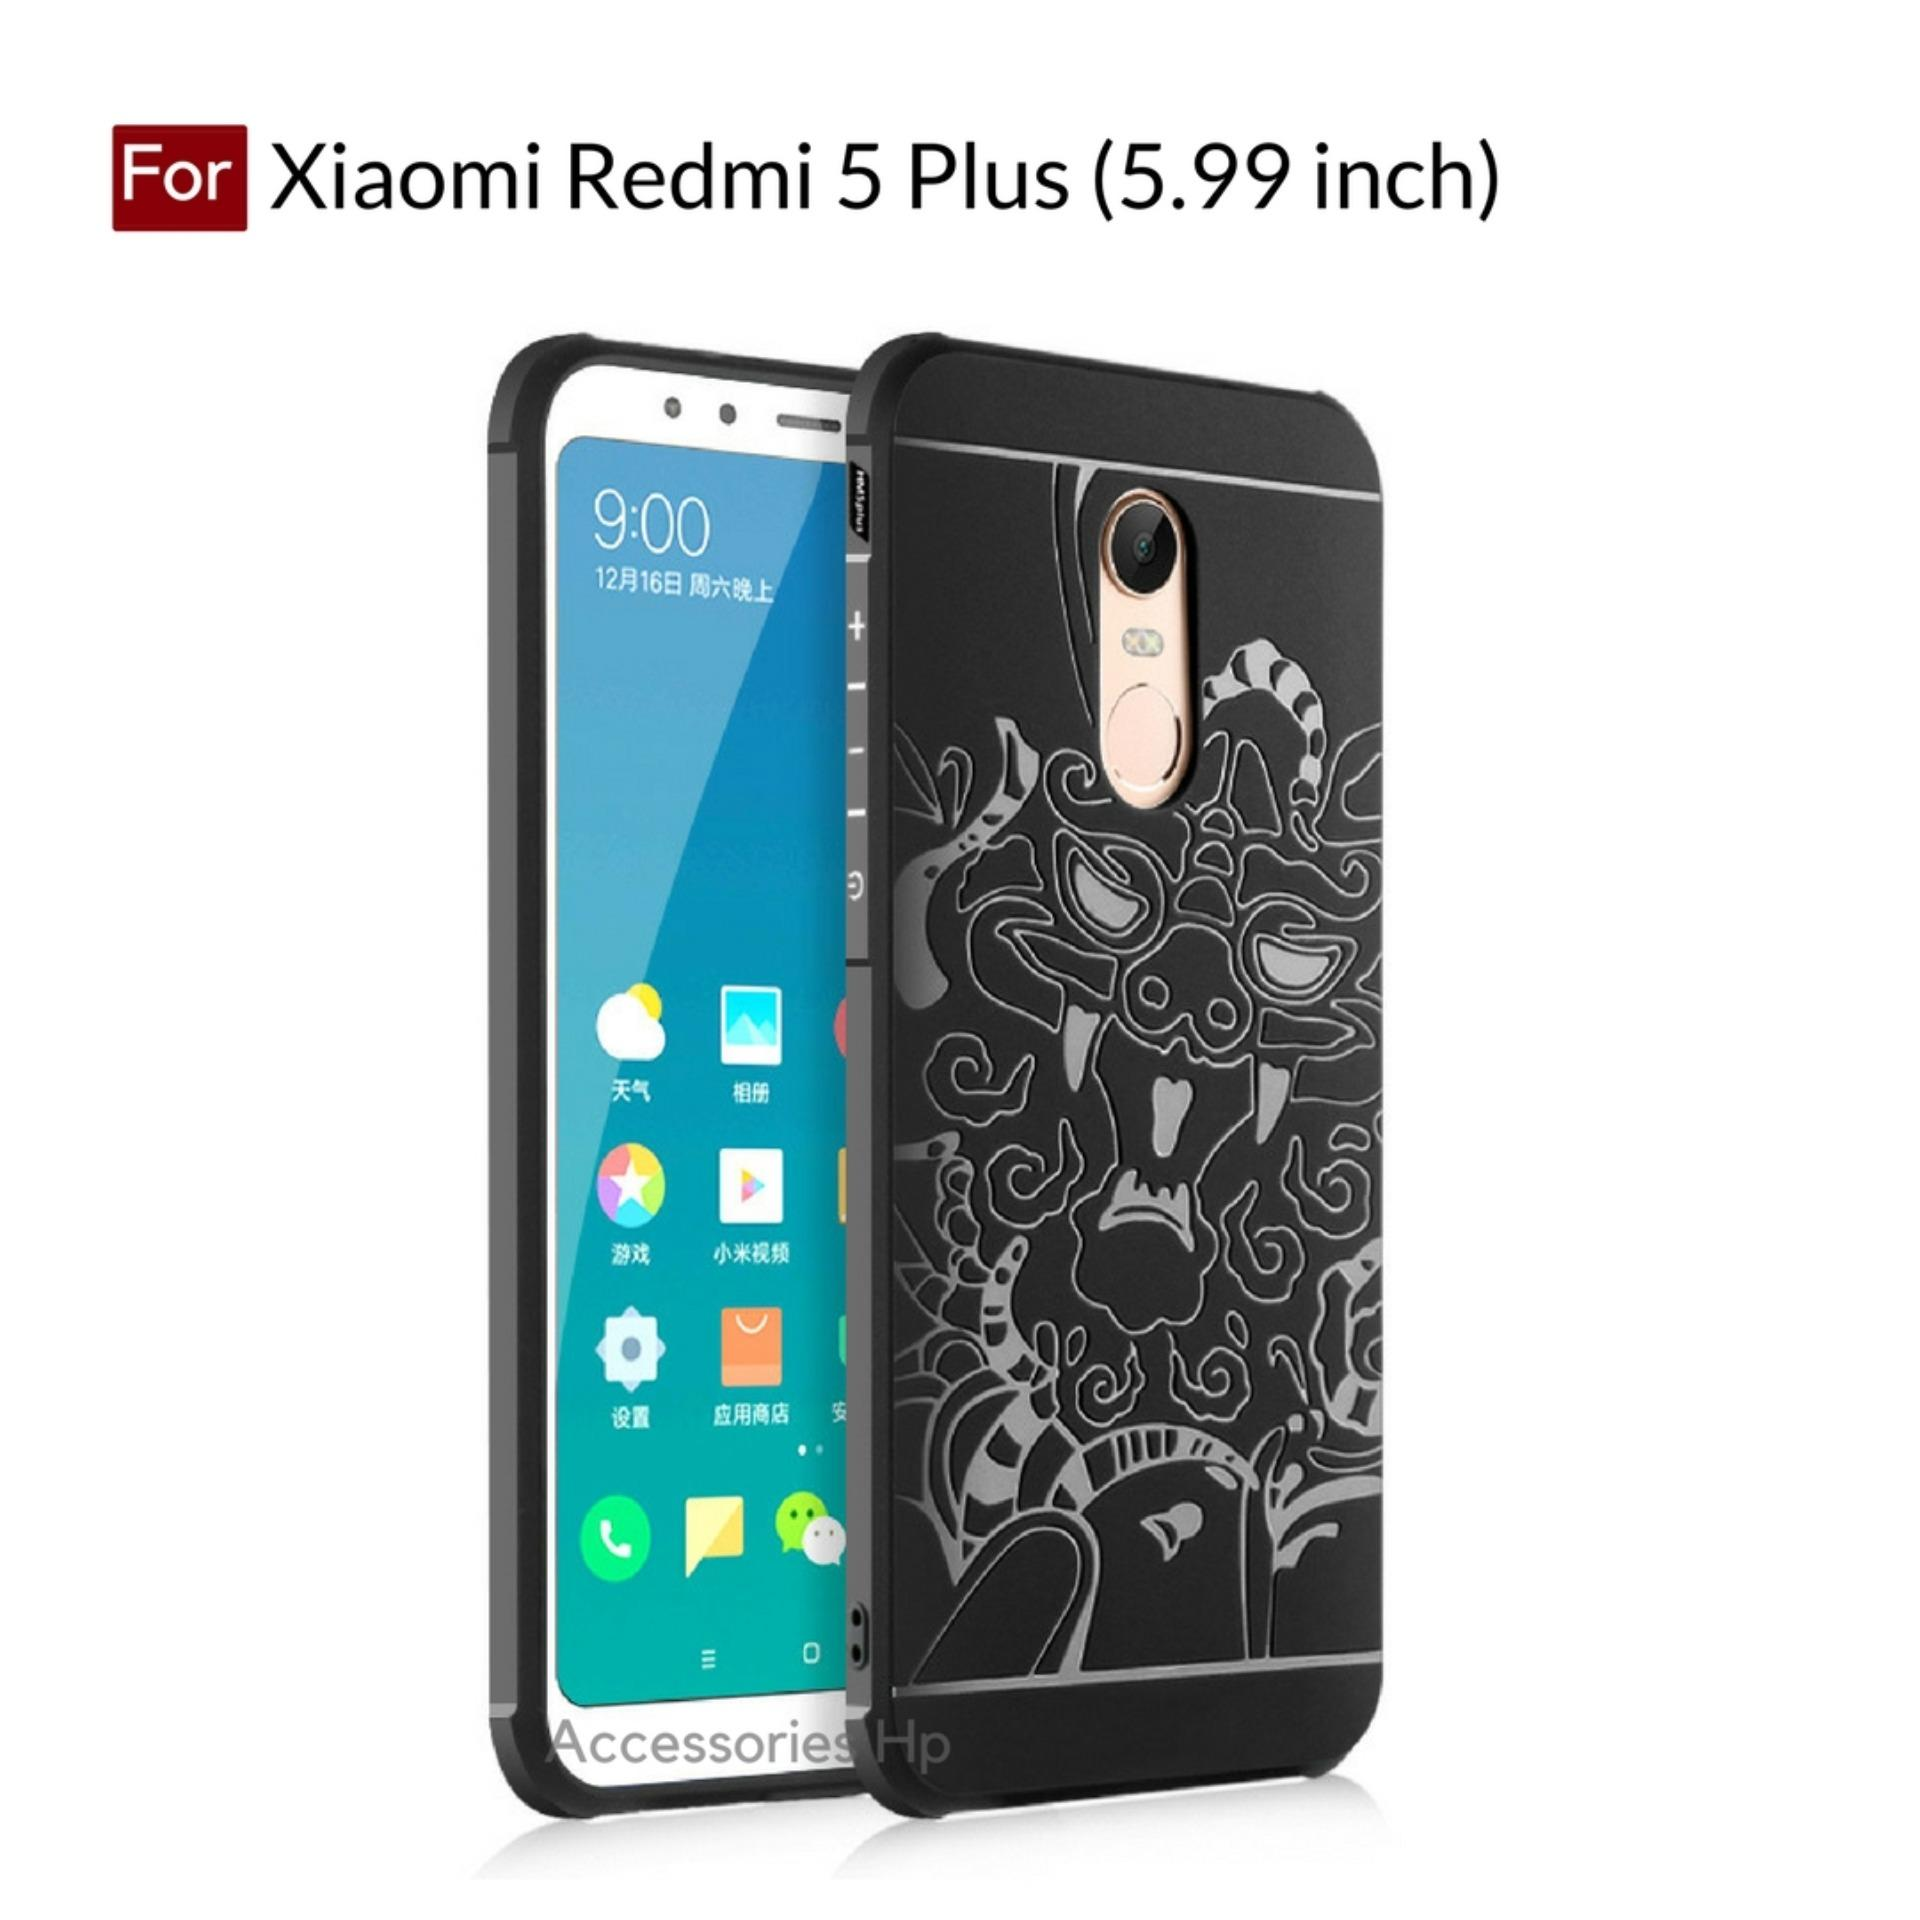 Accessories HP Dragon Shockproof Hybrid Case for Xiaomi Redmi 5 Plus (5.99 inch) -